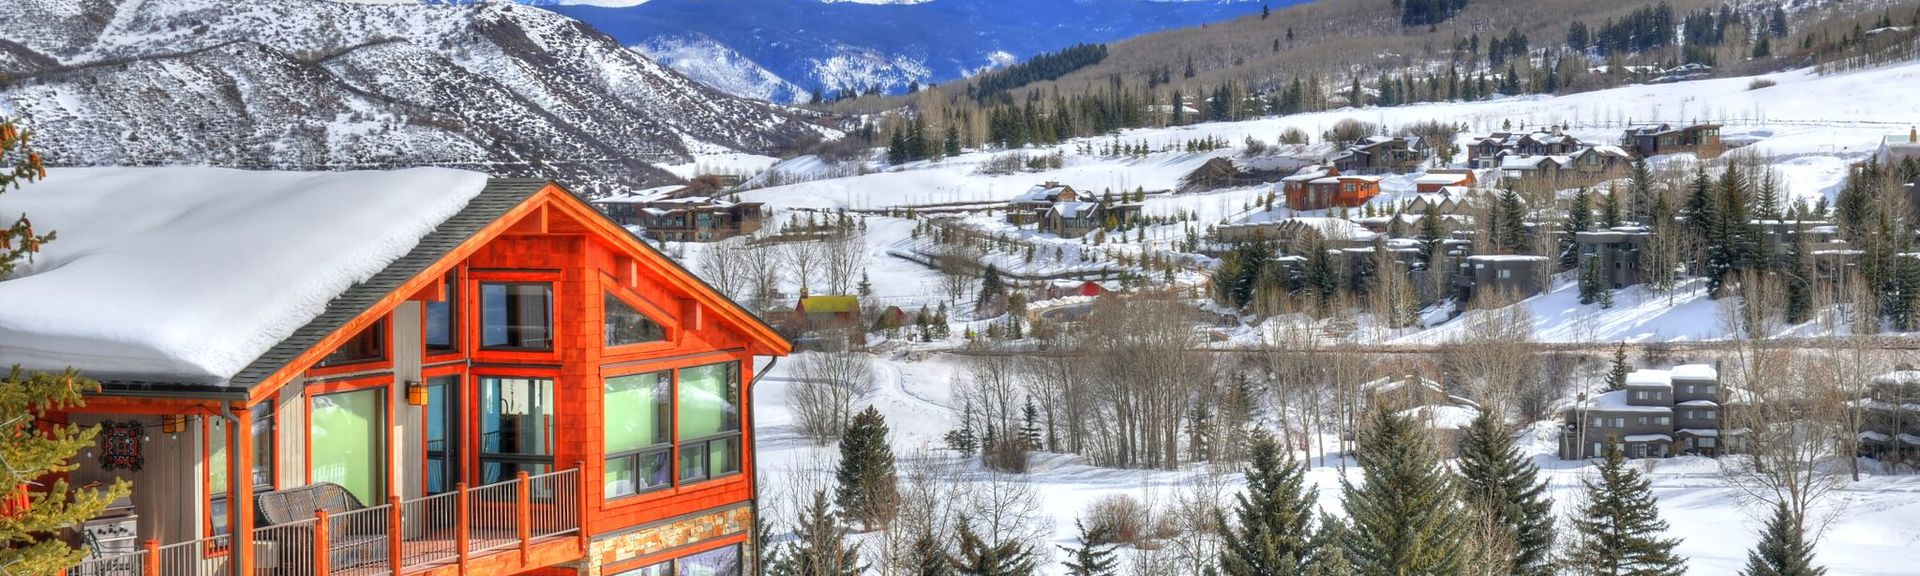 Vrbo Aspen Co Vacation Rentals House Rentals More